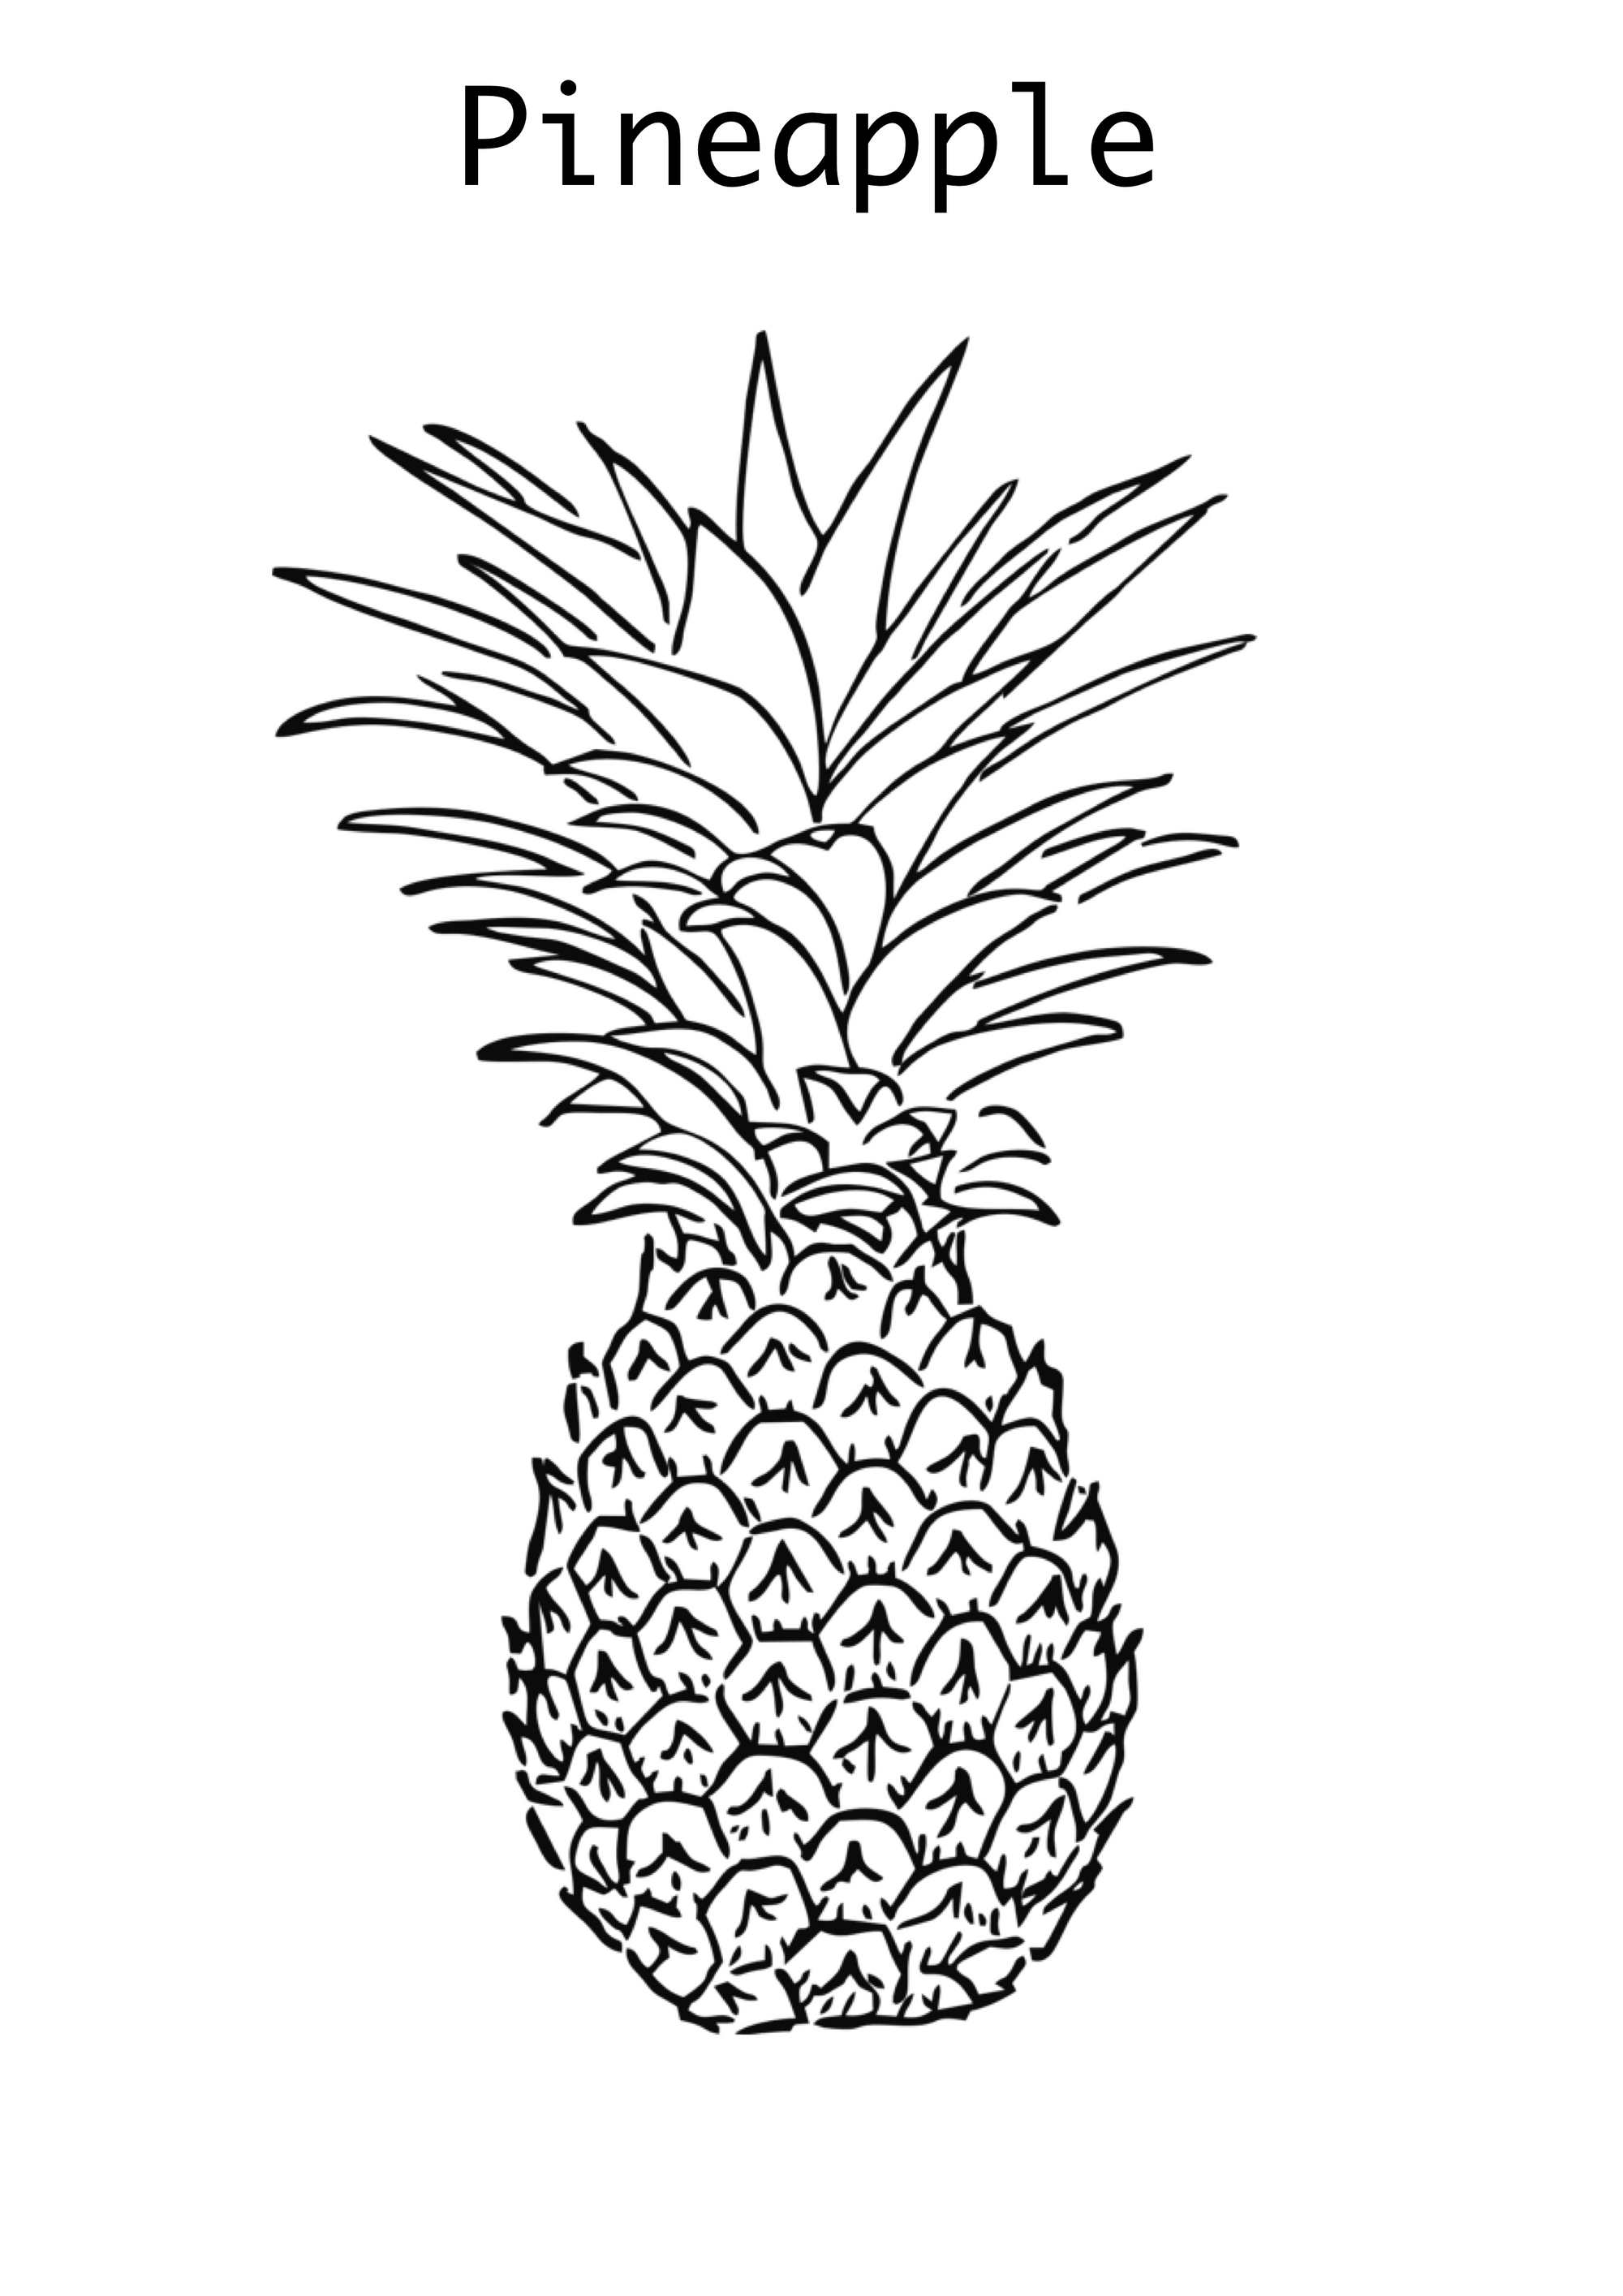 pineapple coloring image pineapple coloring pages to download and print for free coloring pineapple image